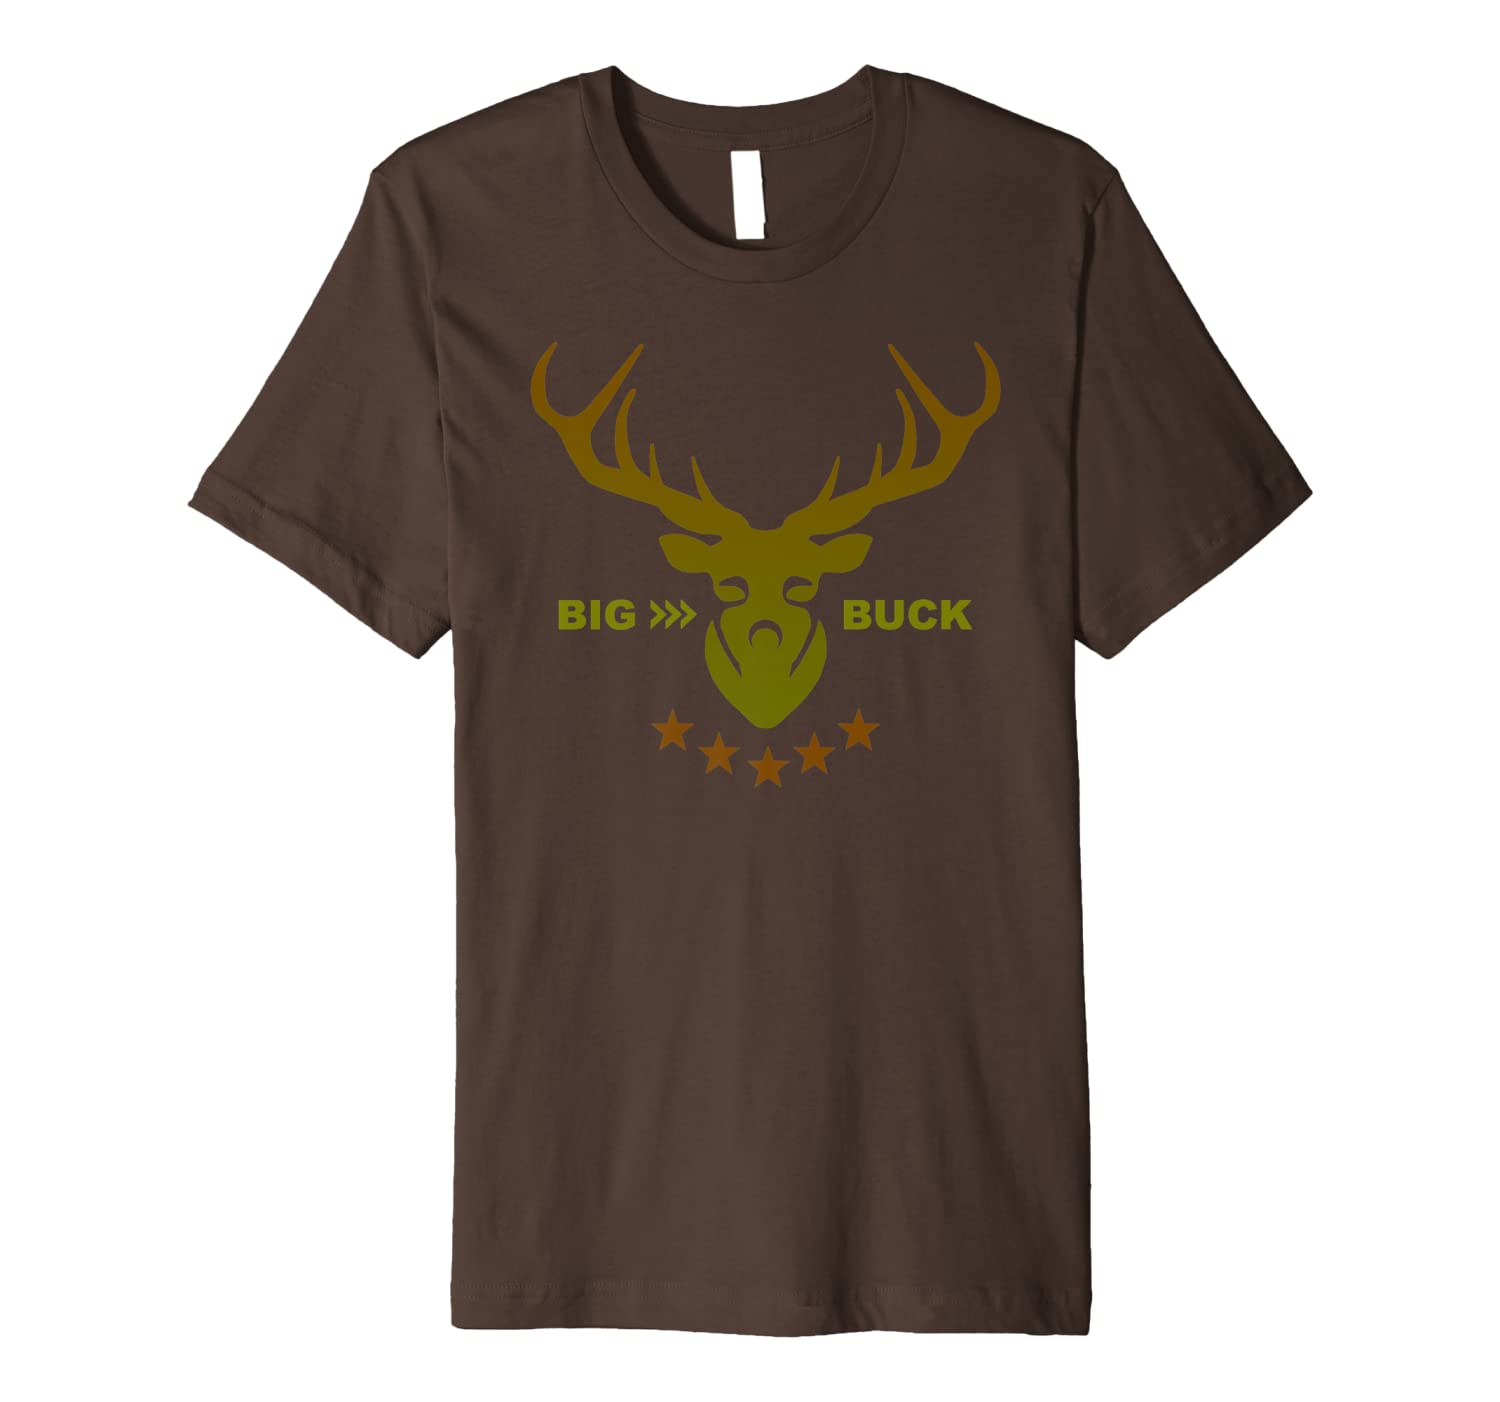 Hunters Big Buck Deer Hunting Premium T-Shirt Unisex Tshirt